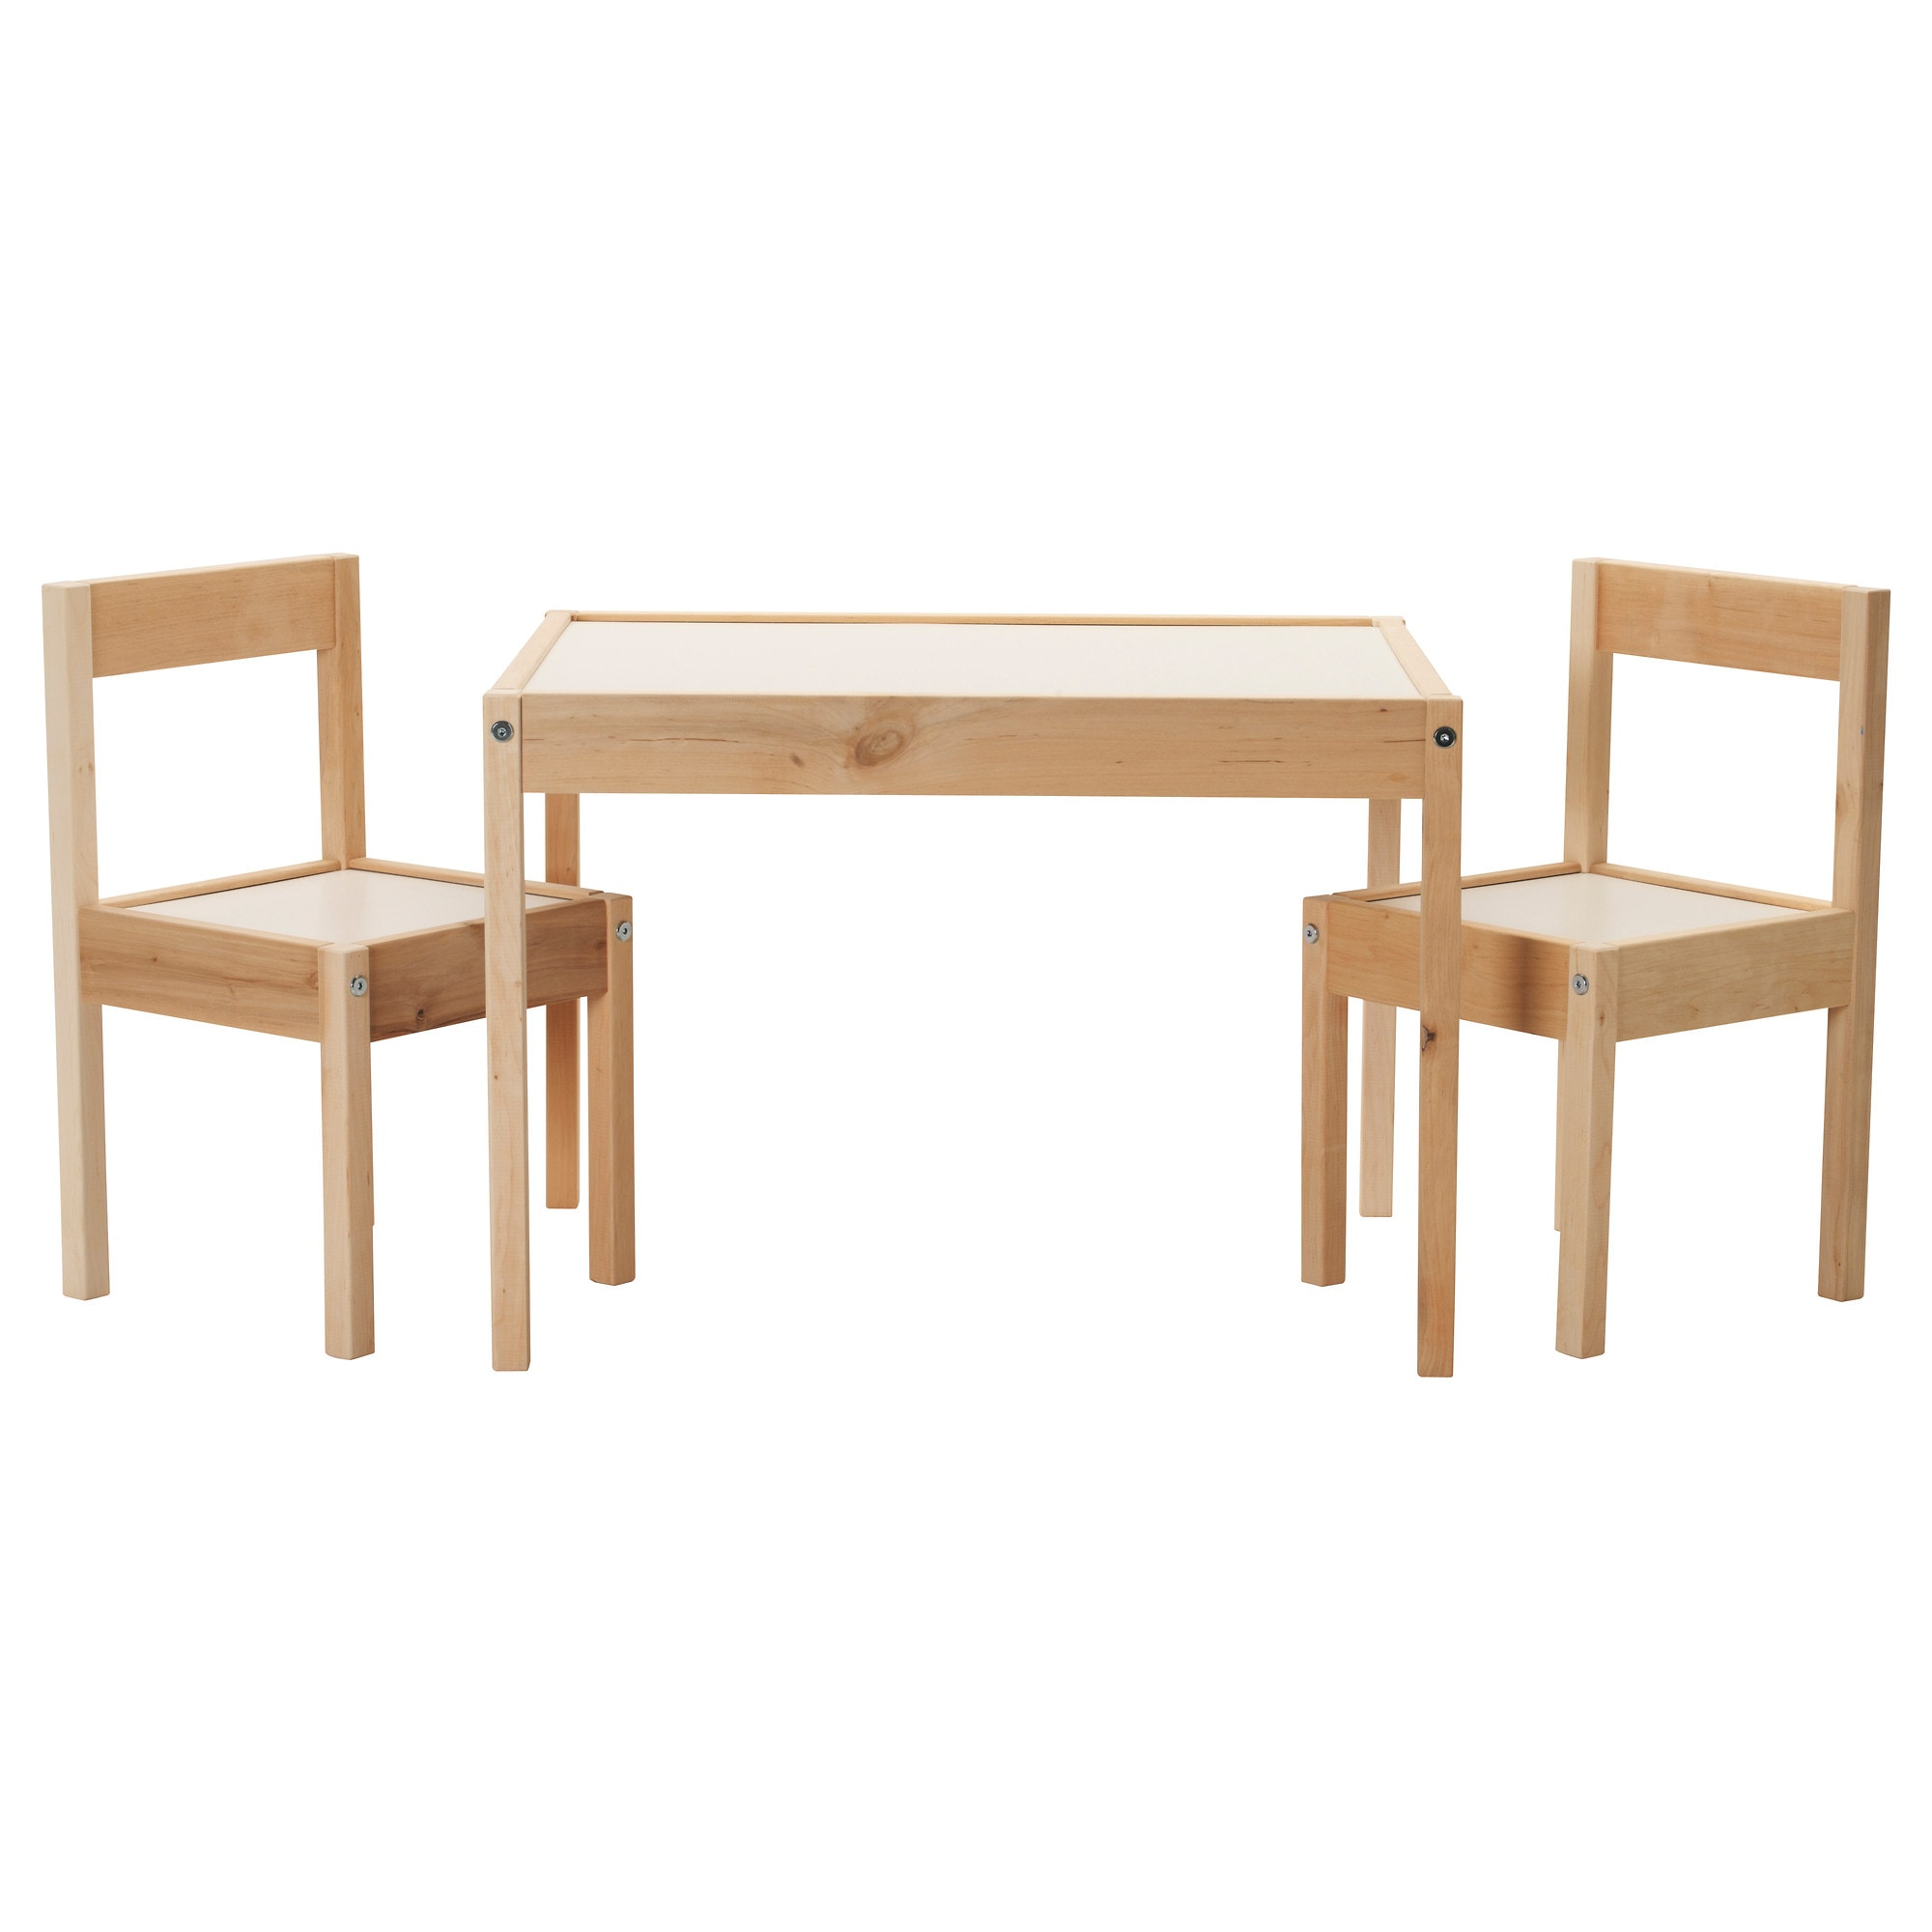 petite table ik a pour enfants en promo table de lit. Black Bedroom Furniture Sets. Home Design Ideas